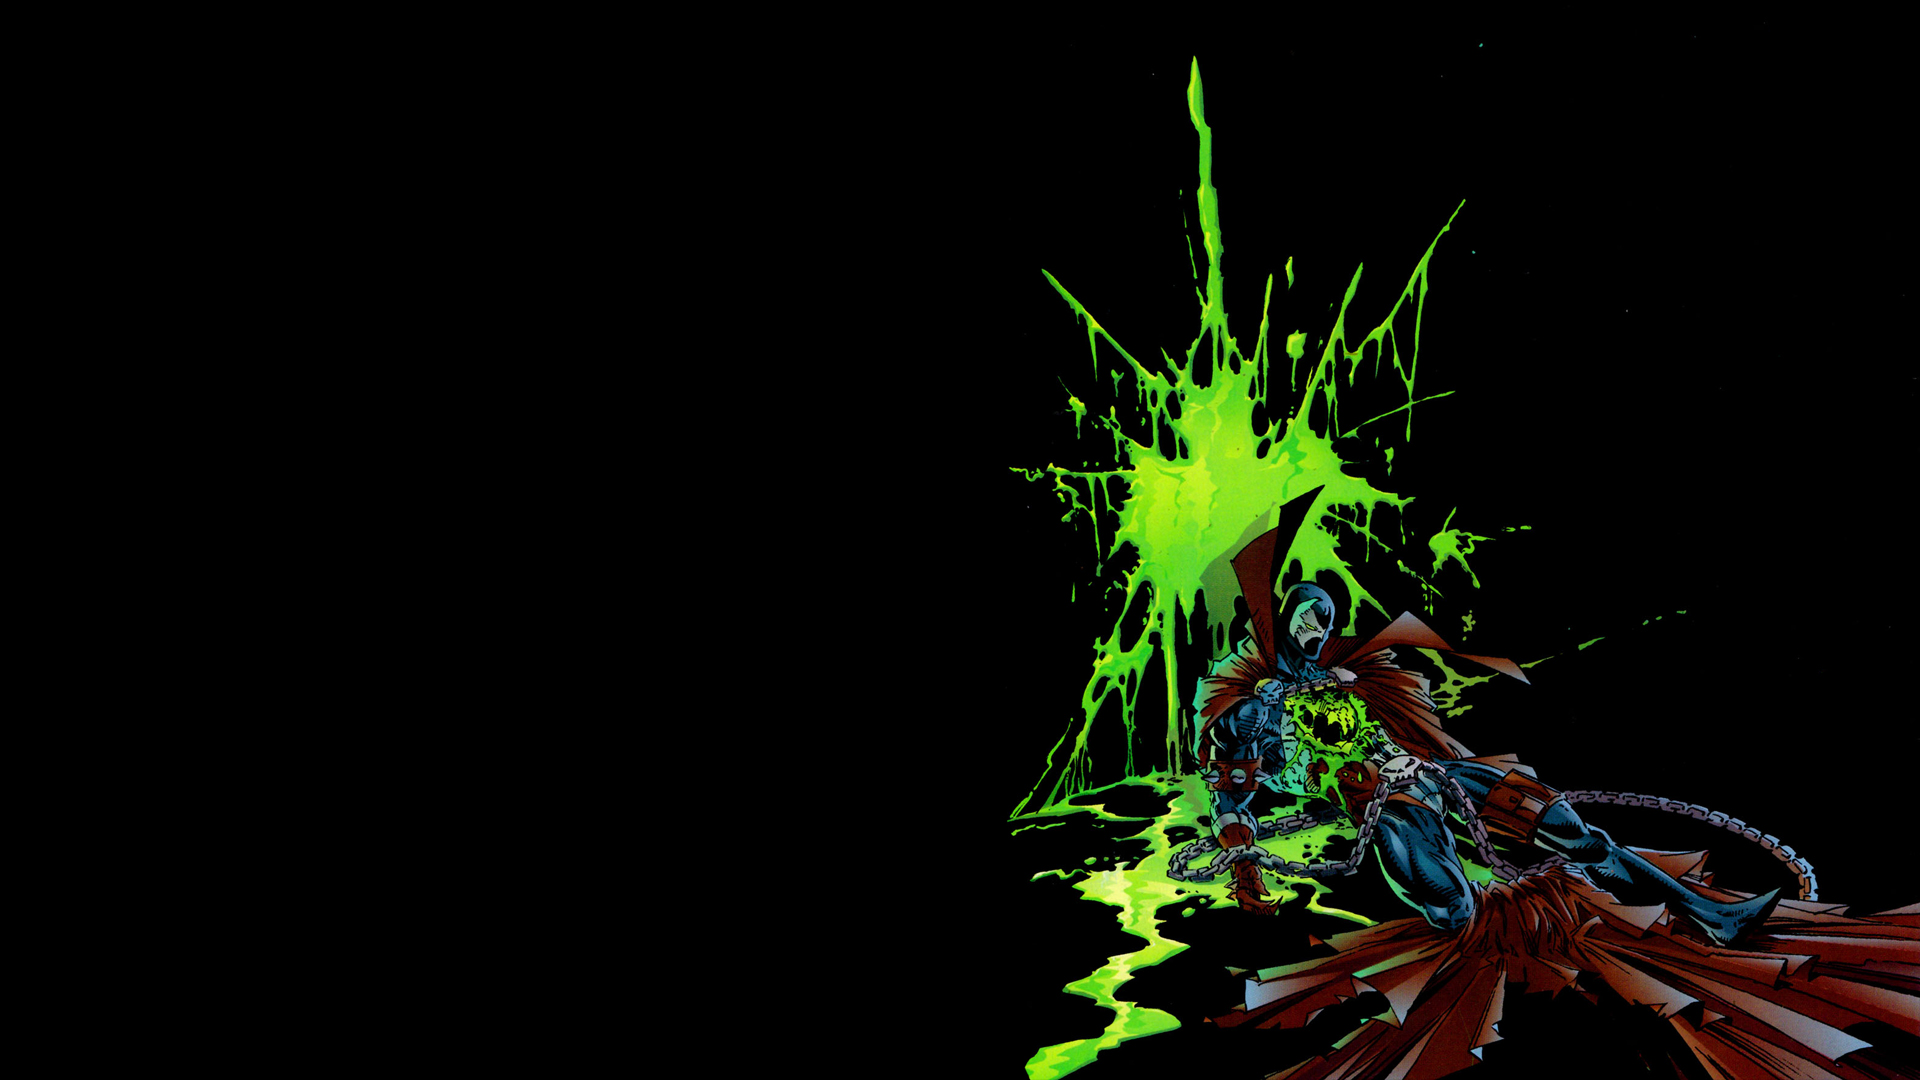 Spawn Wallpaper HD 1920x1080 - WallpaperSafari